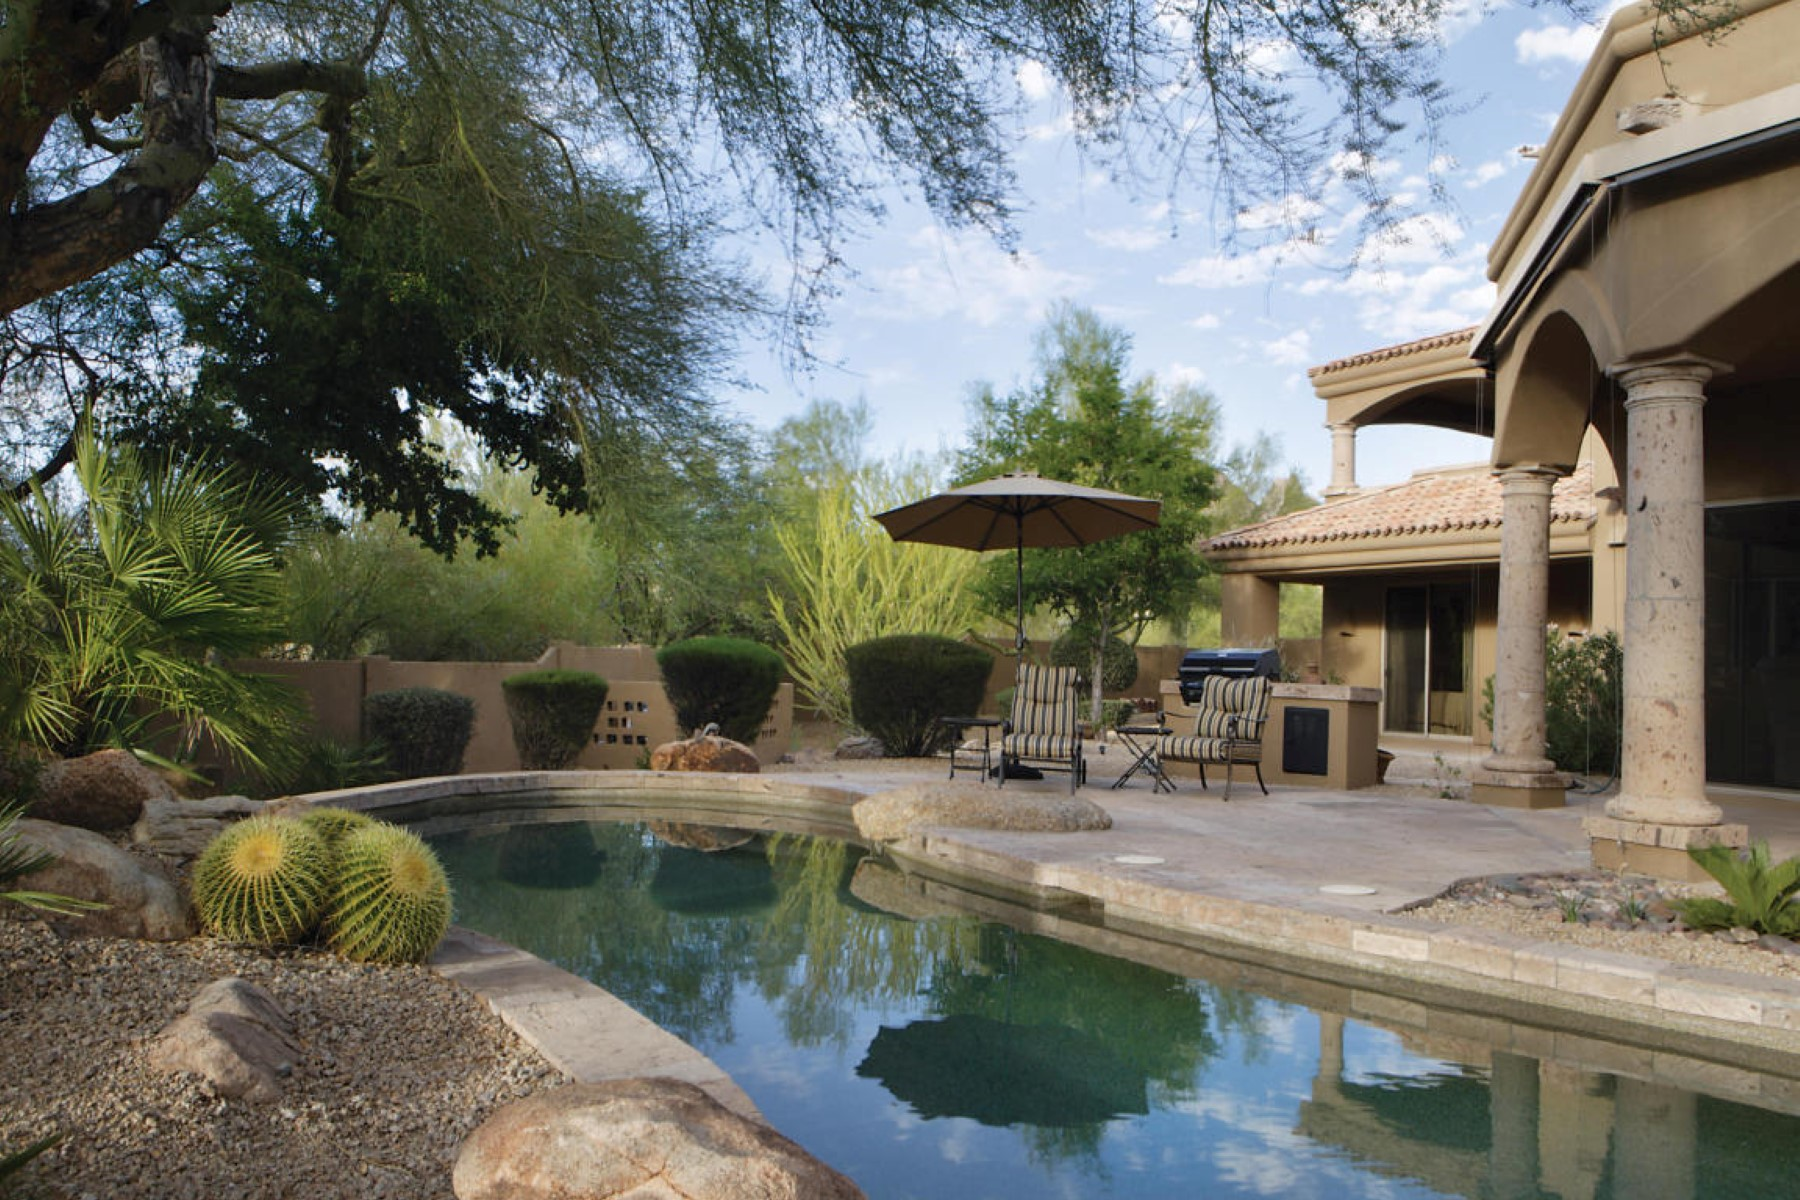 Single Family Home for Sale at Desert Skyline Estates is one of North Scottsdale's desirable gated communities 25230 N 93rd Way Scottsdale, Arizona 85255 United States